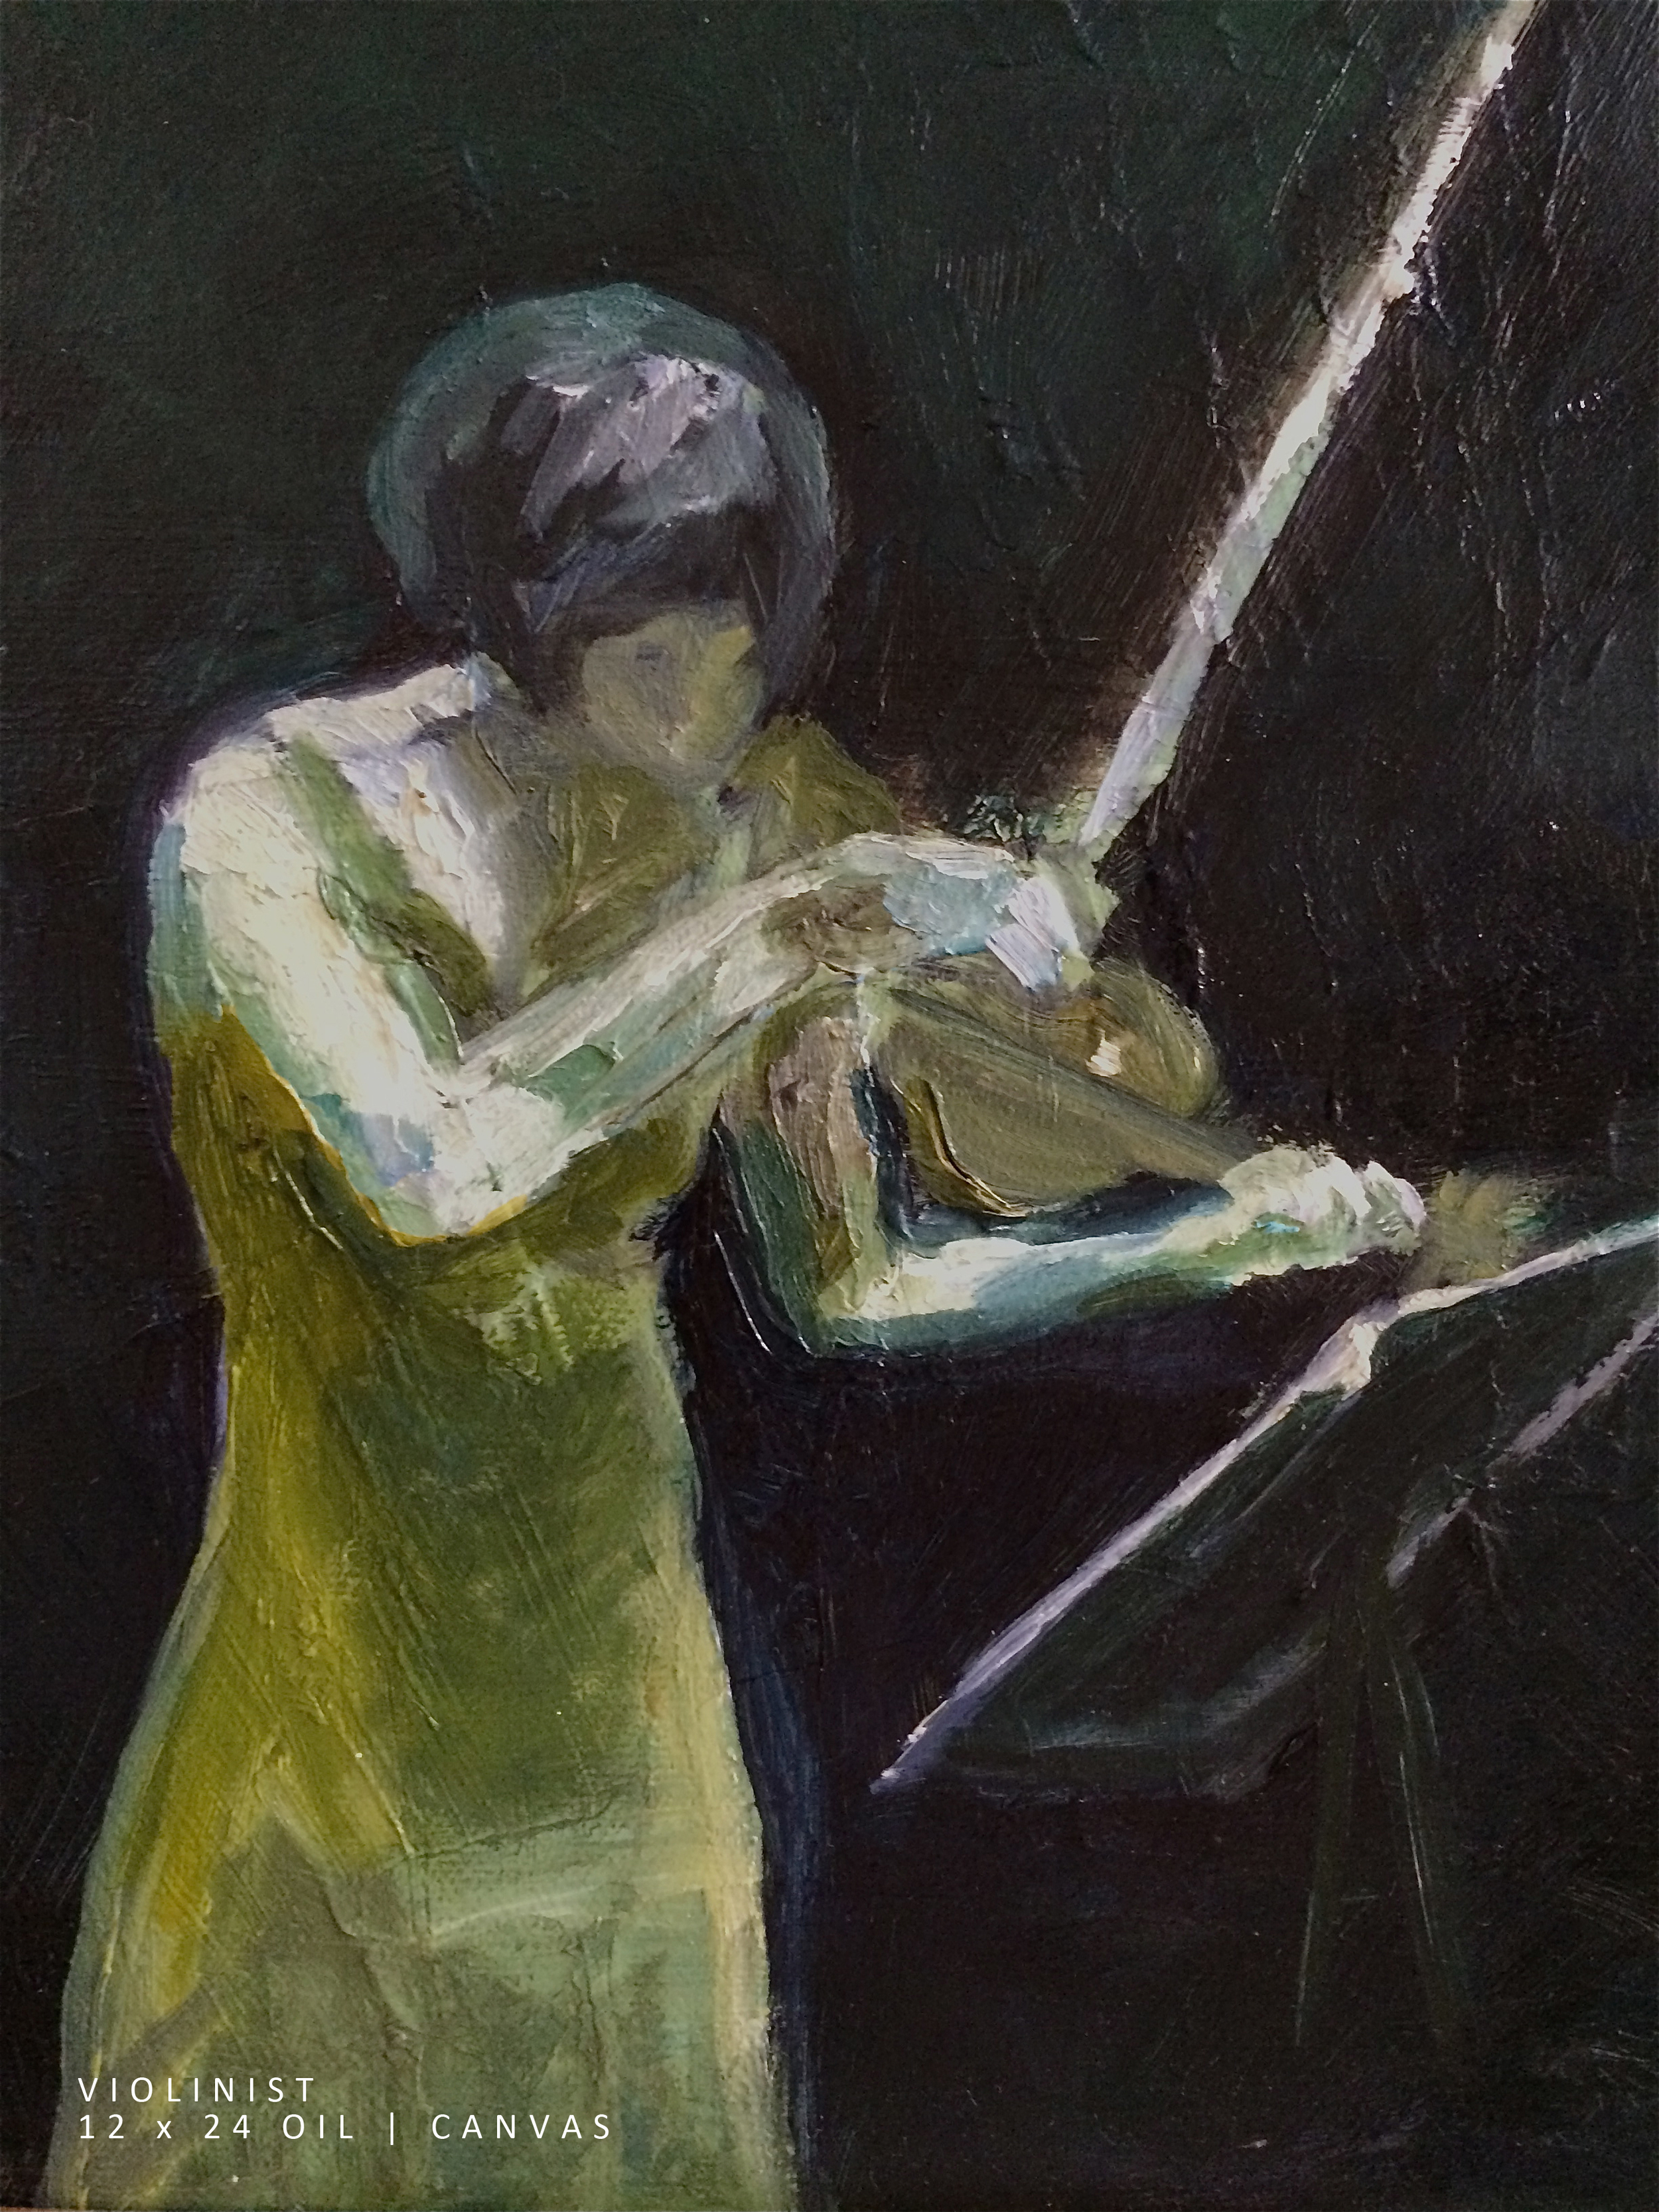 Violinist 12x12 Oil-Canvas NEW.jpg